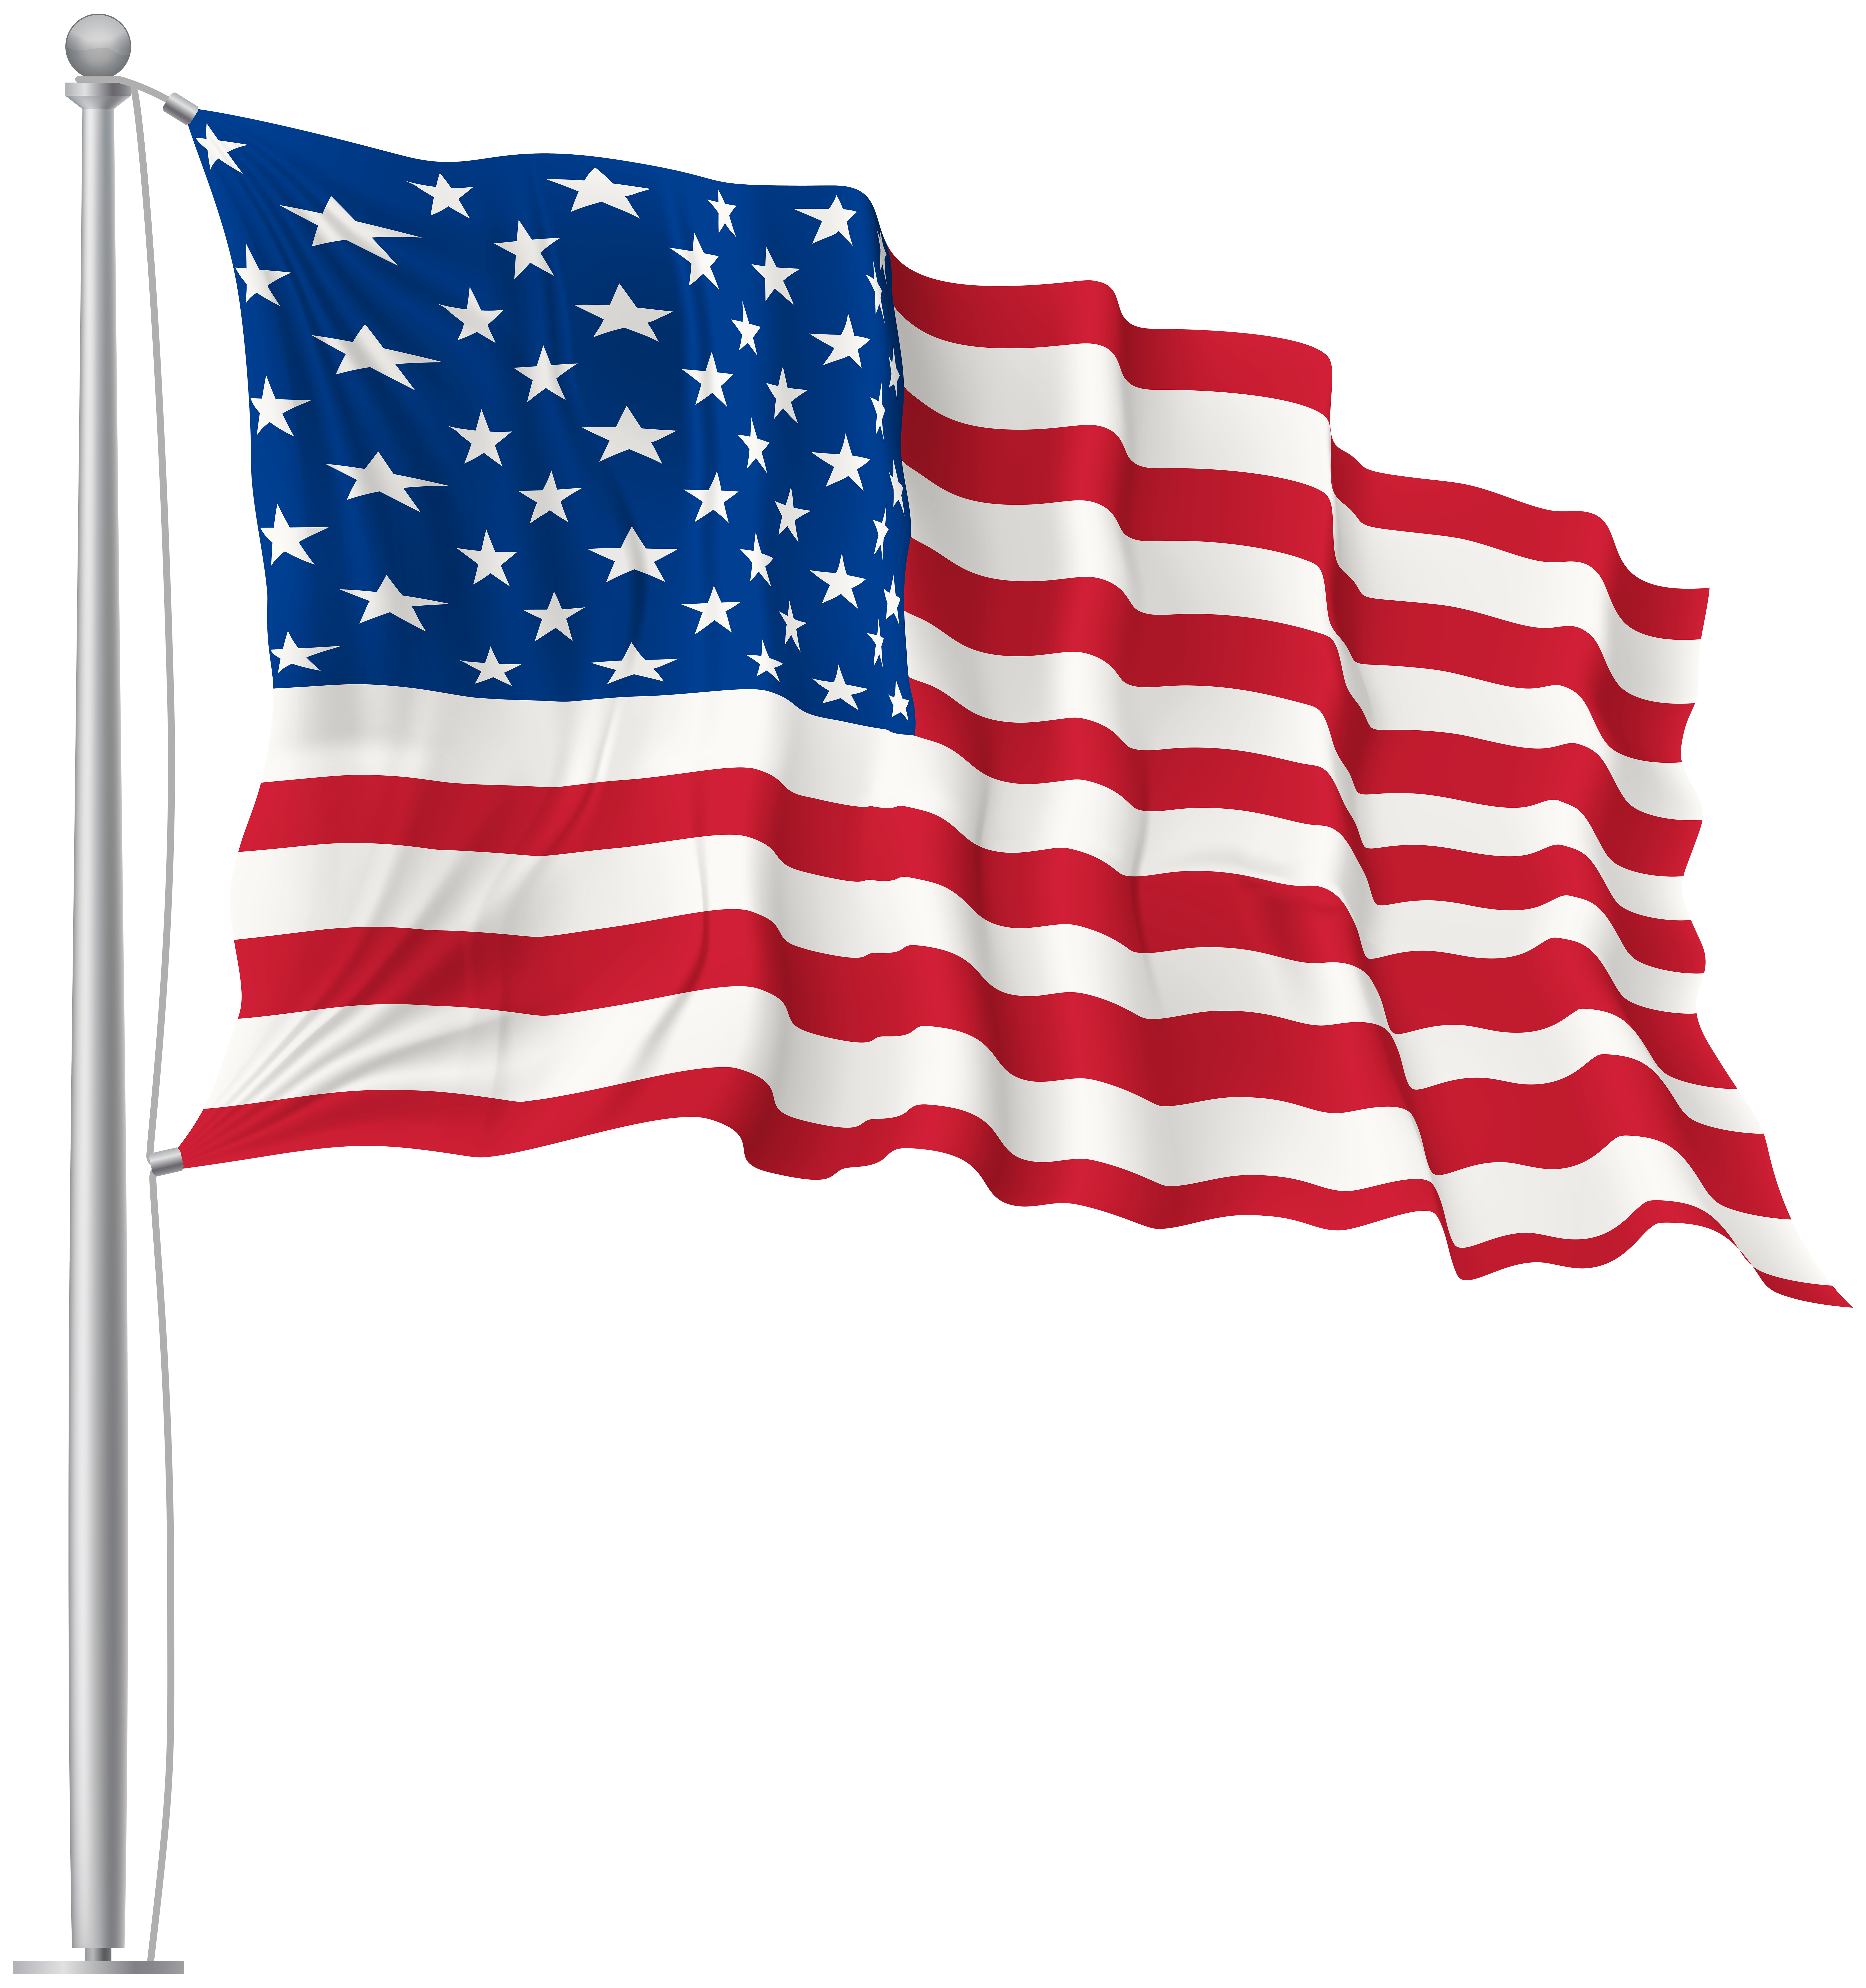 Usa waving png image. Markers clipart flag